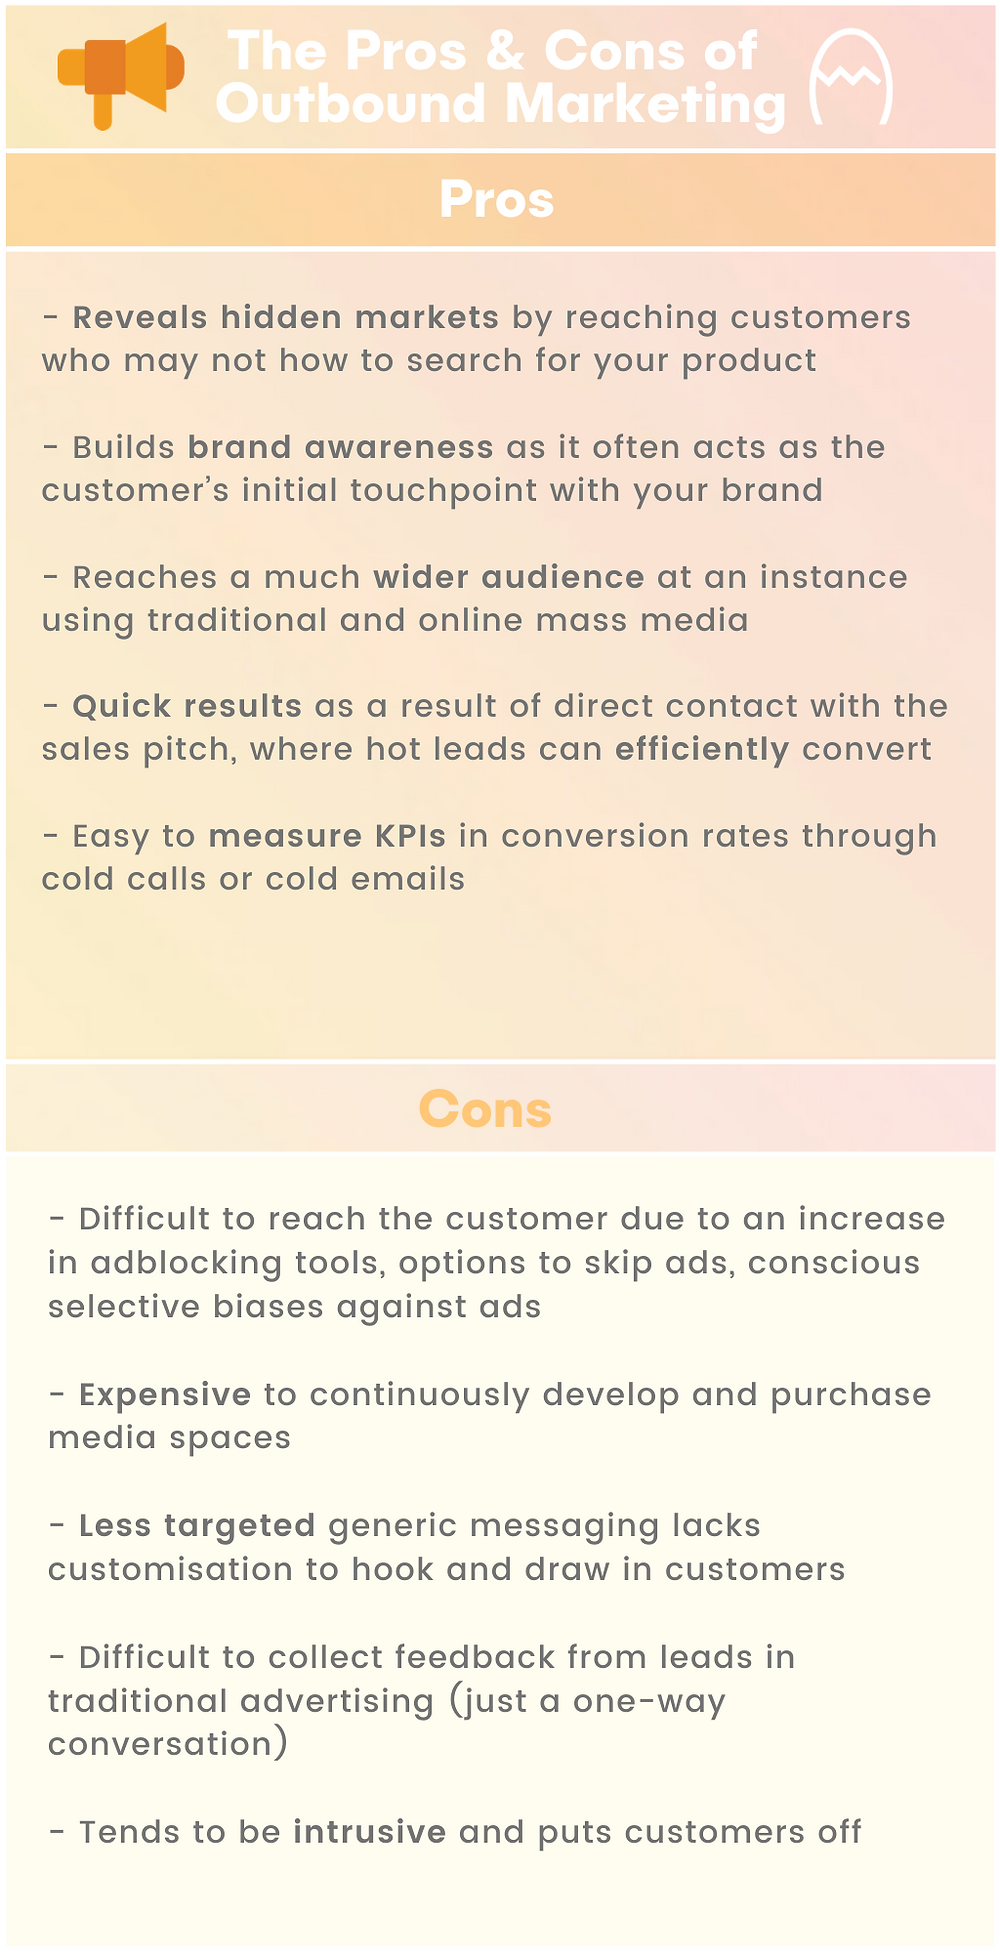 Pros and cons of outbound marketing